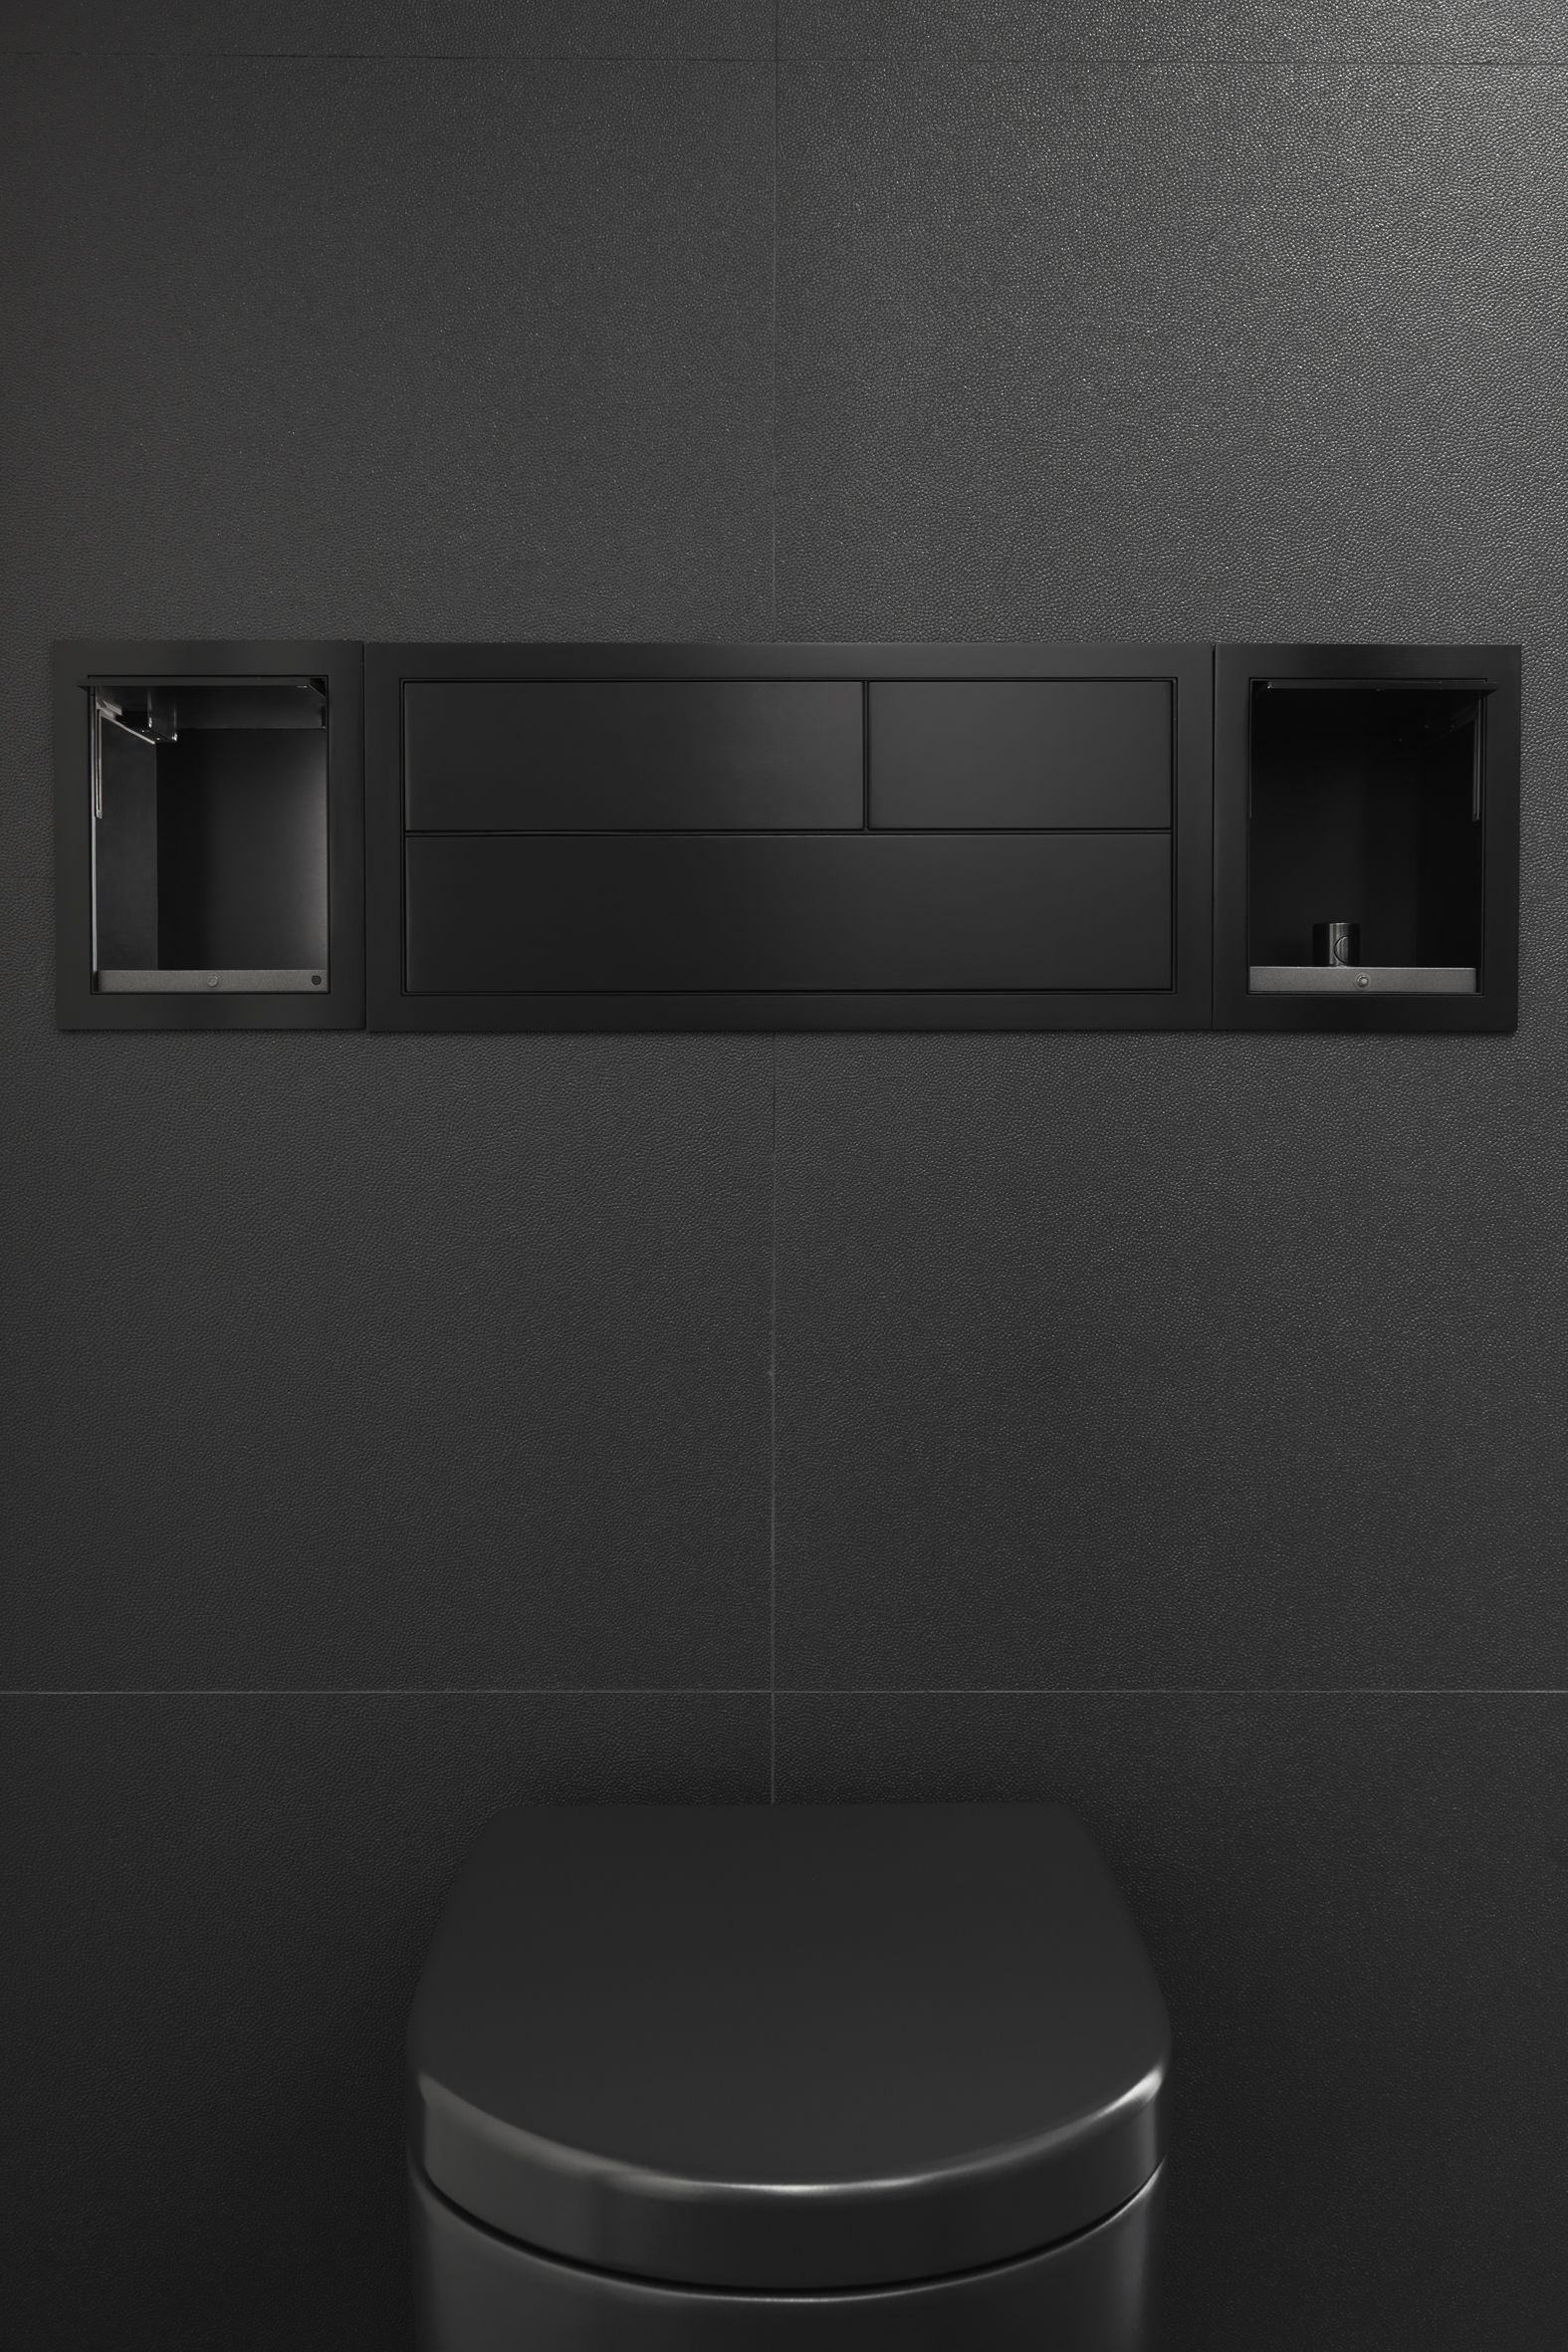 Sanitarios Roca Online Wall Hung Toilet By Armani Roca Bathroom Baños